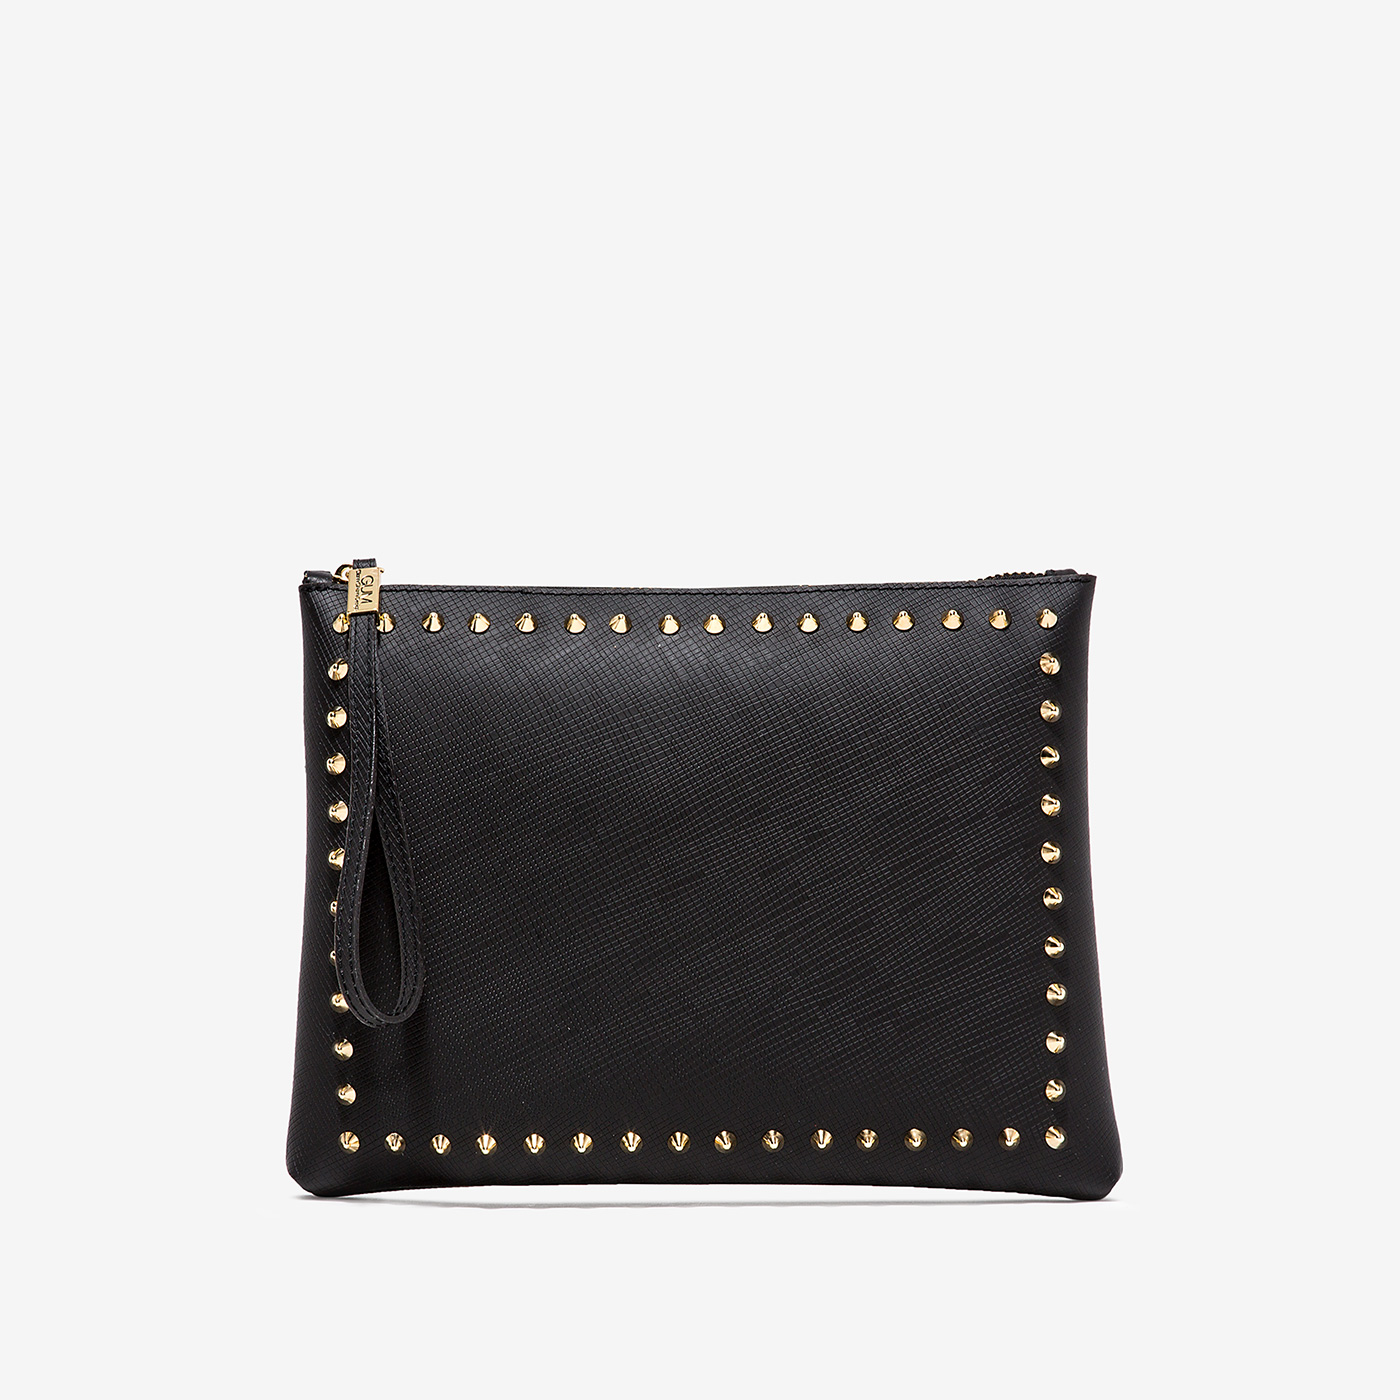 GUM: NUMBERS MAXI CLUTCH BAG